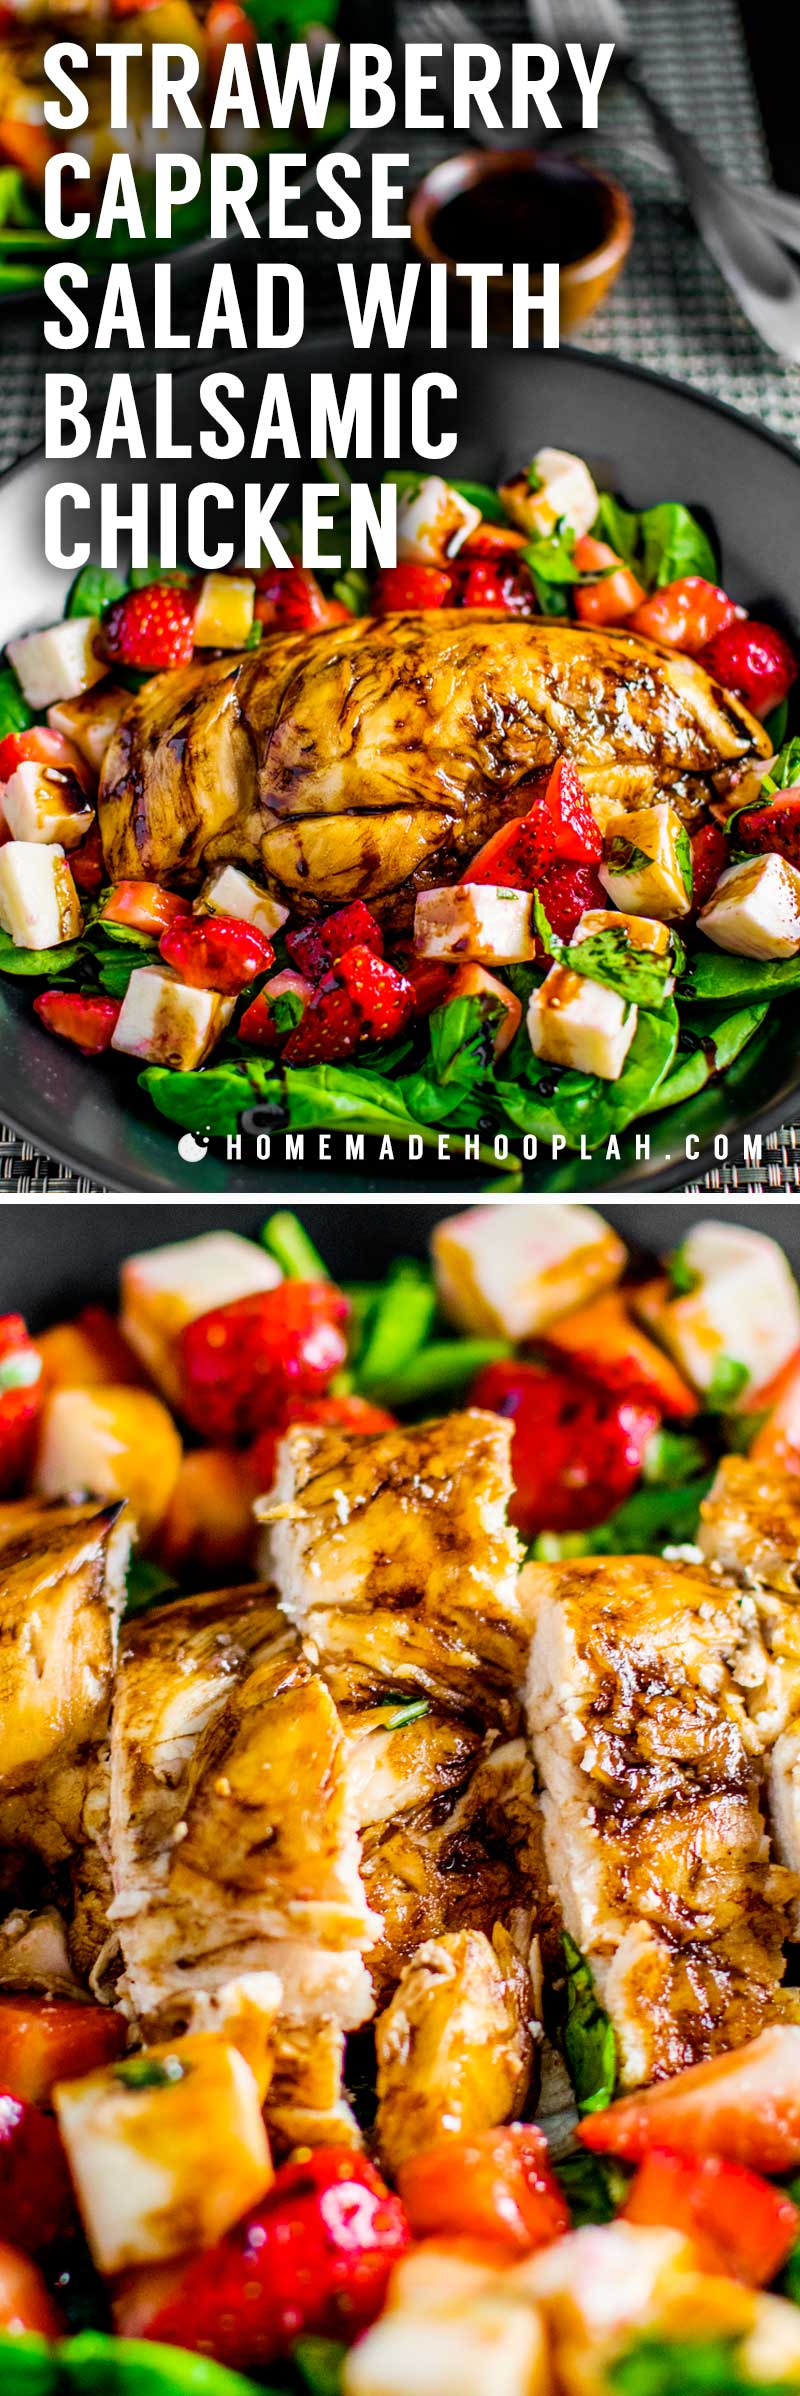 Strawberry Caprese Salad with Balsamic Chicken! Liven up your salad routine with a strawberry caprese salad served with tender balsamic chicken, sweet fruit, and fresh mozzarella on a bed of baby spinach and drizzled with homemade balsamic glaze. | HomemadeHooplah.com